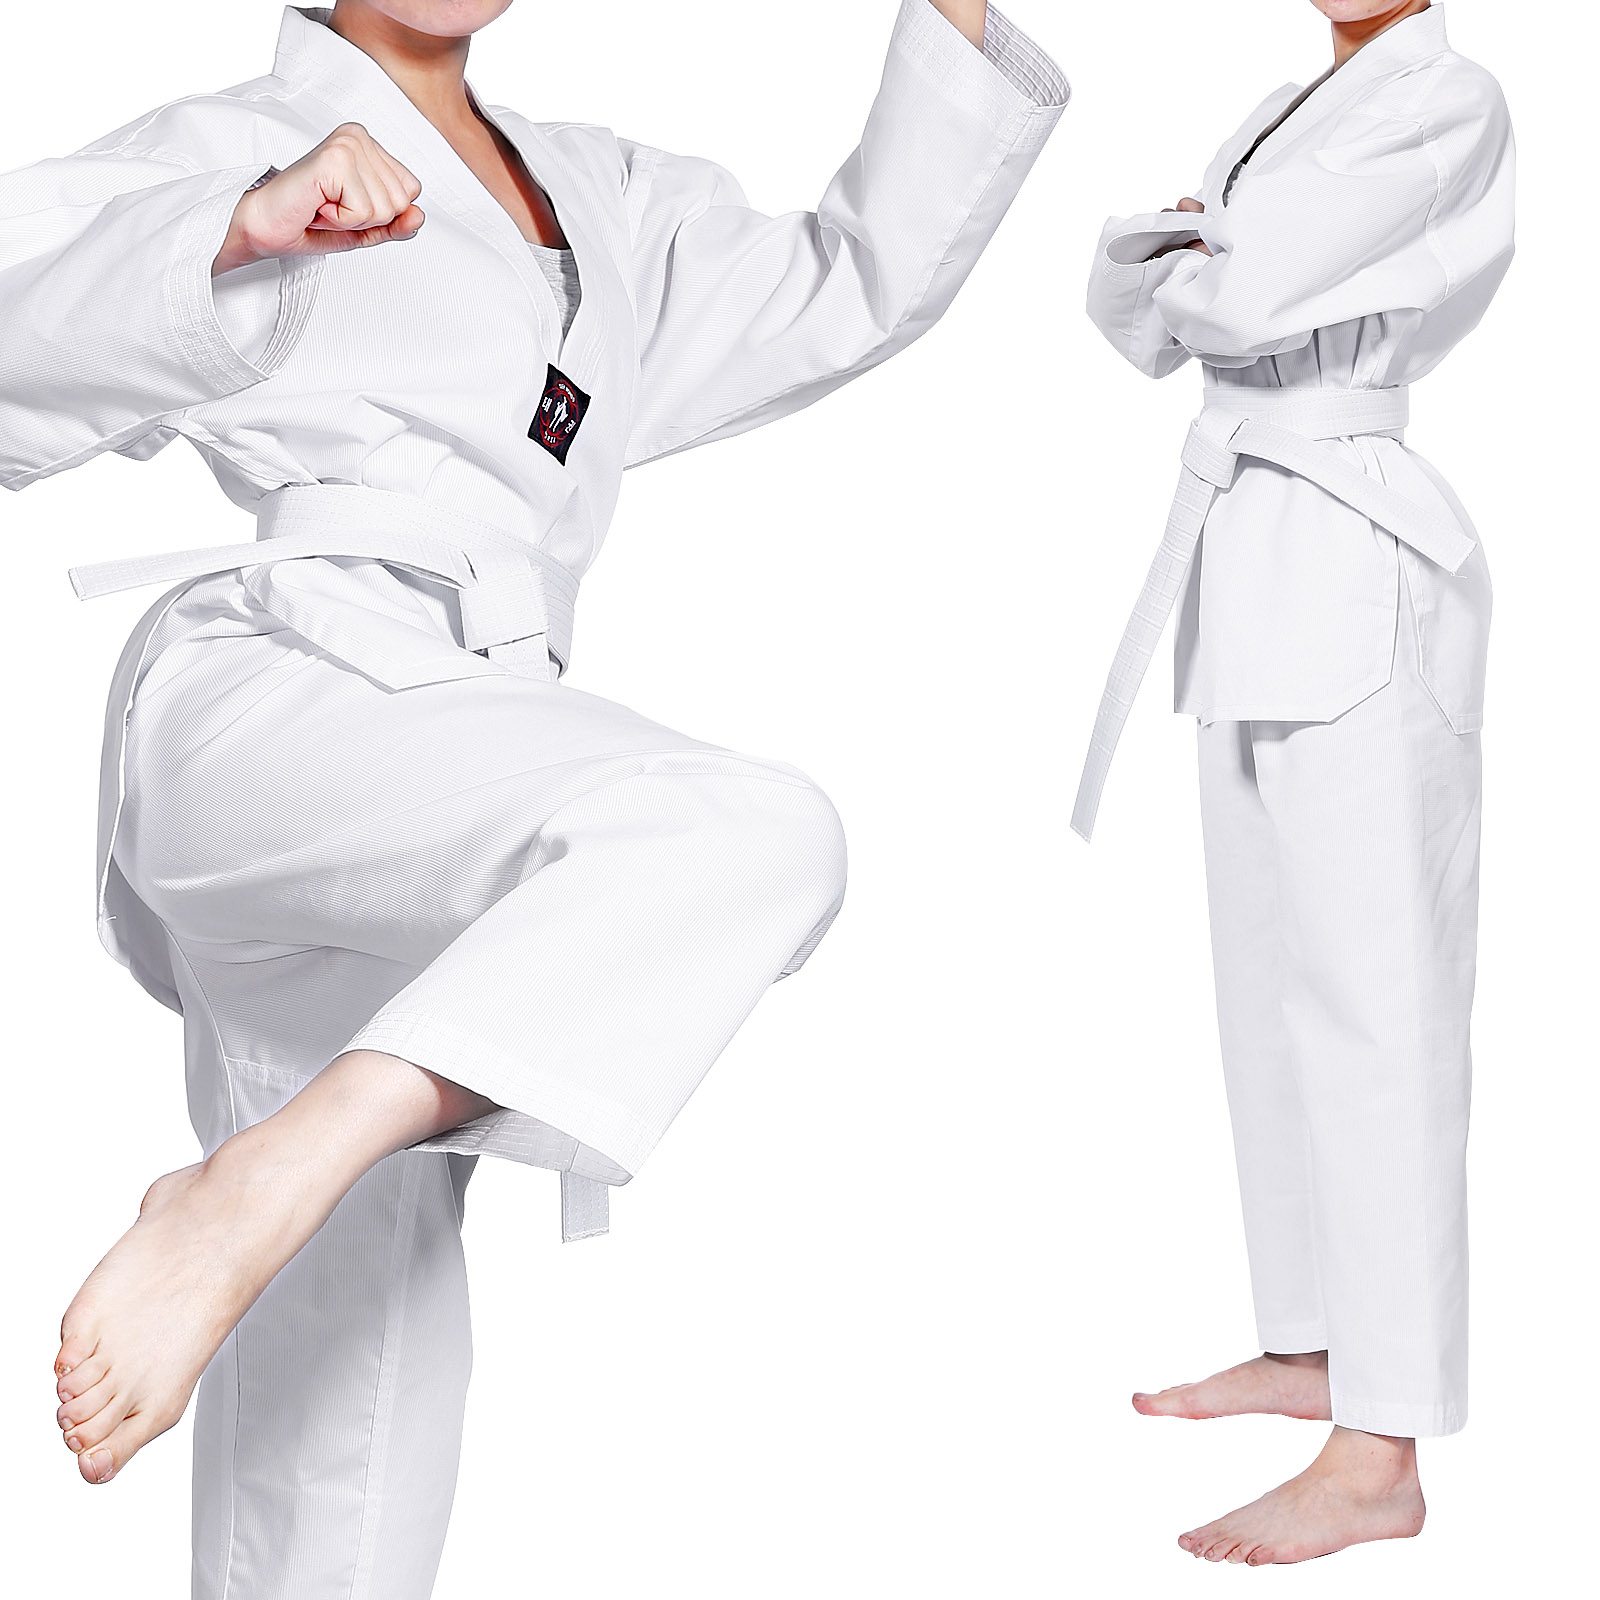 renshu taekwondo karateanzug mit g rtel kampfsport kinder. Black Bedroom Furniture Sets. Home Design Ideas